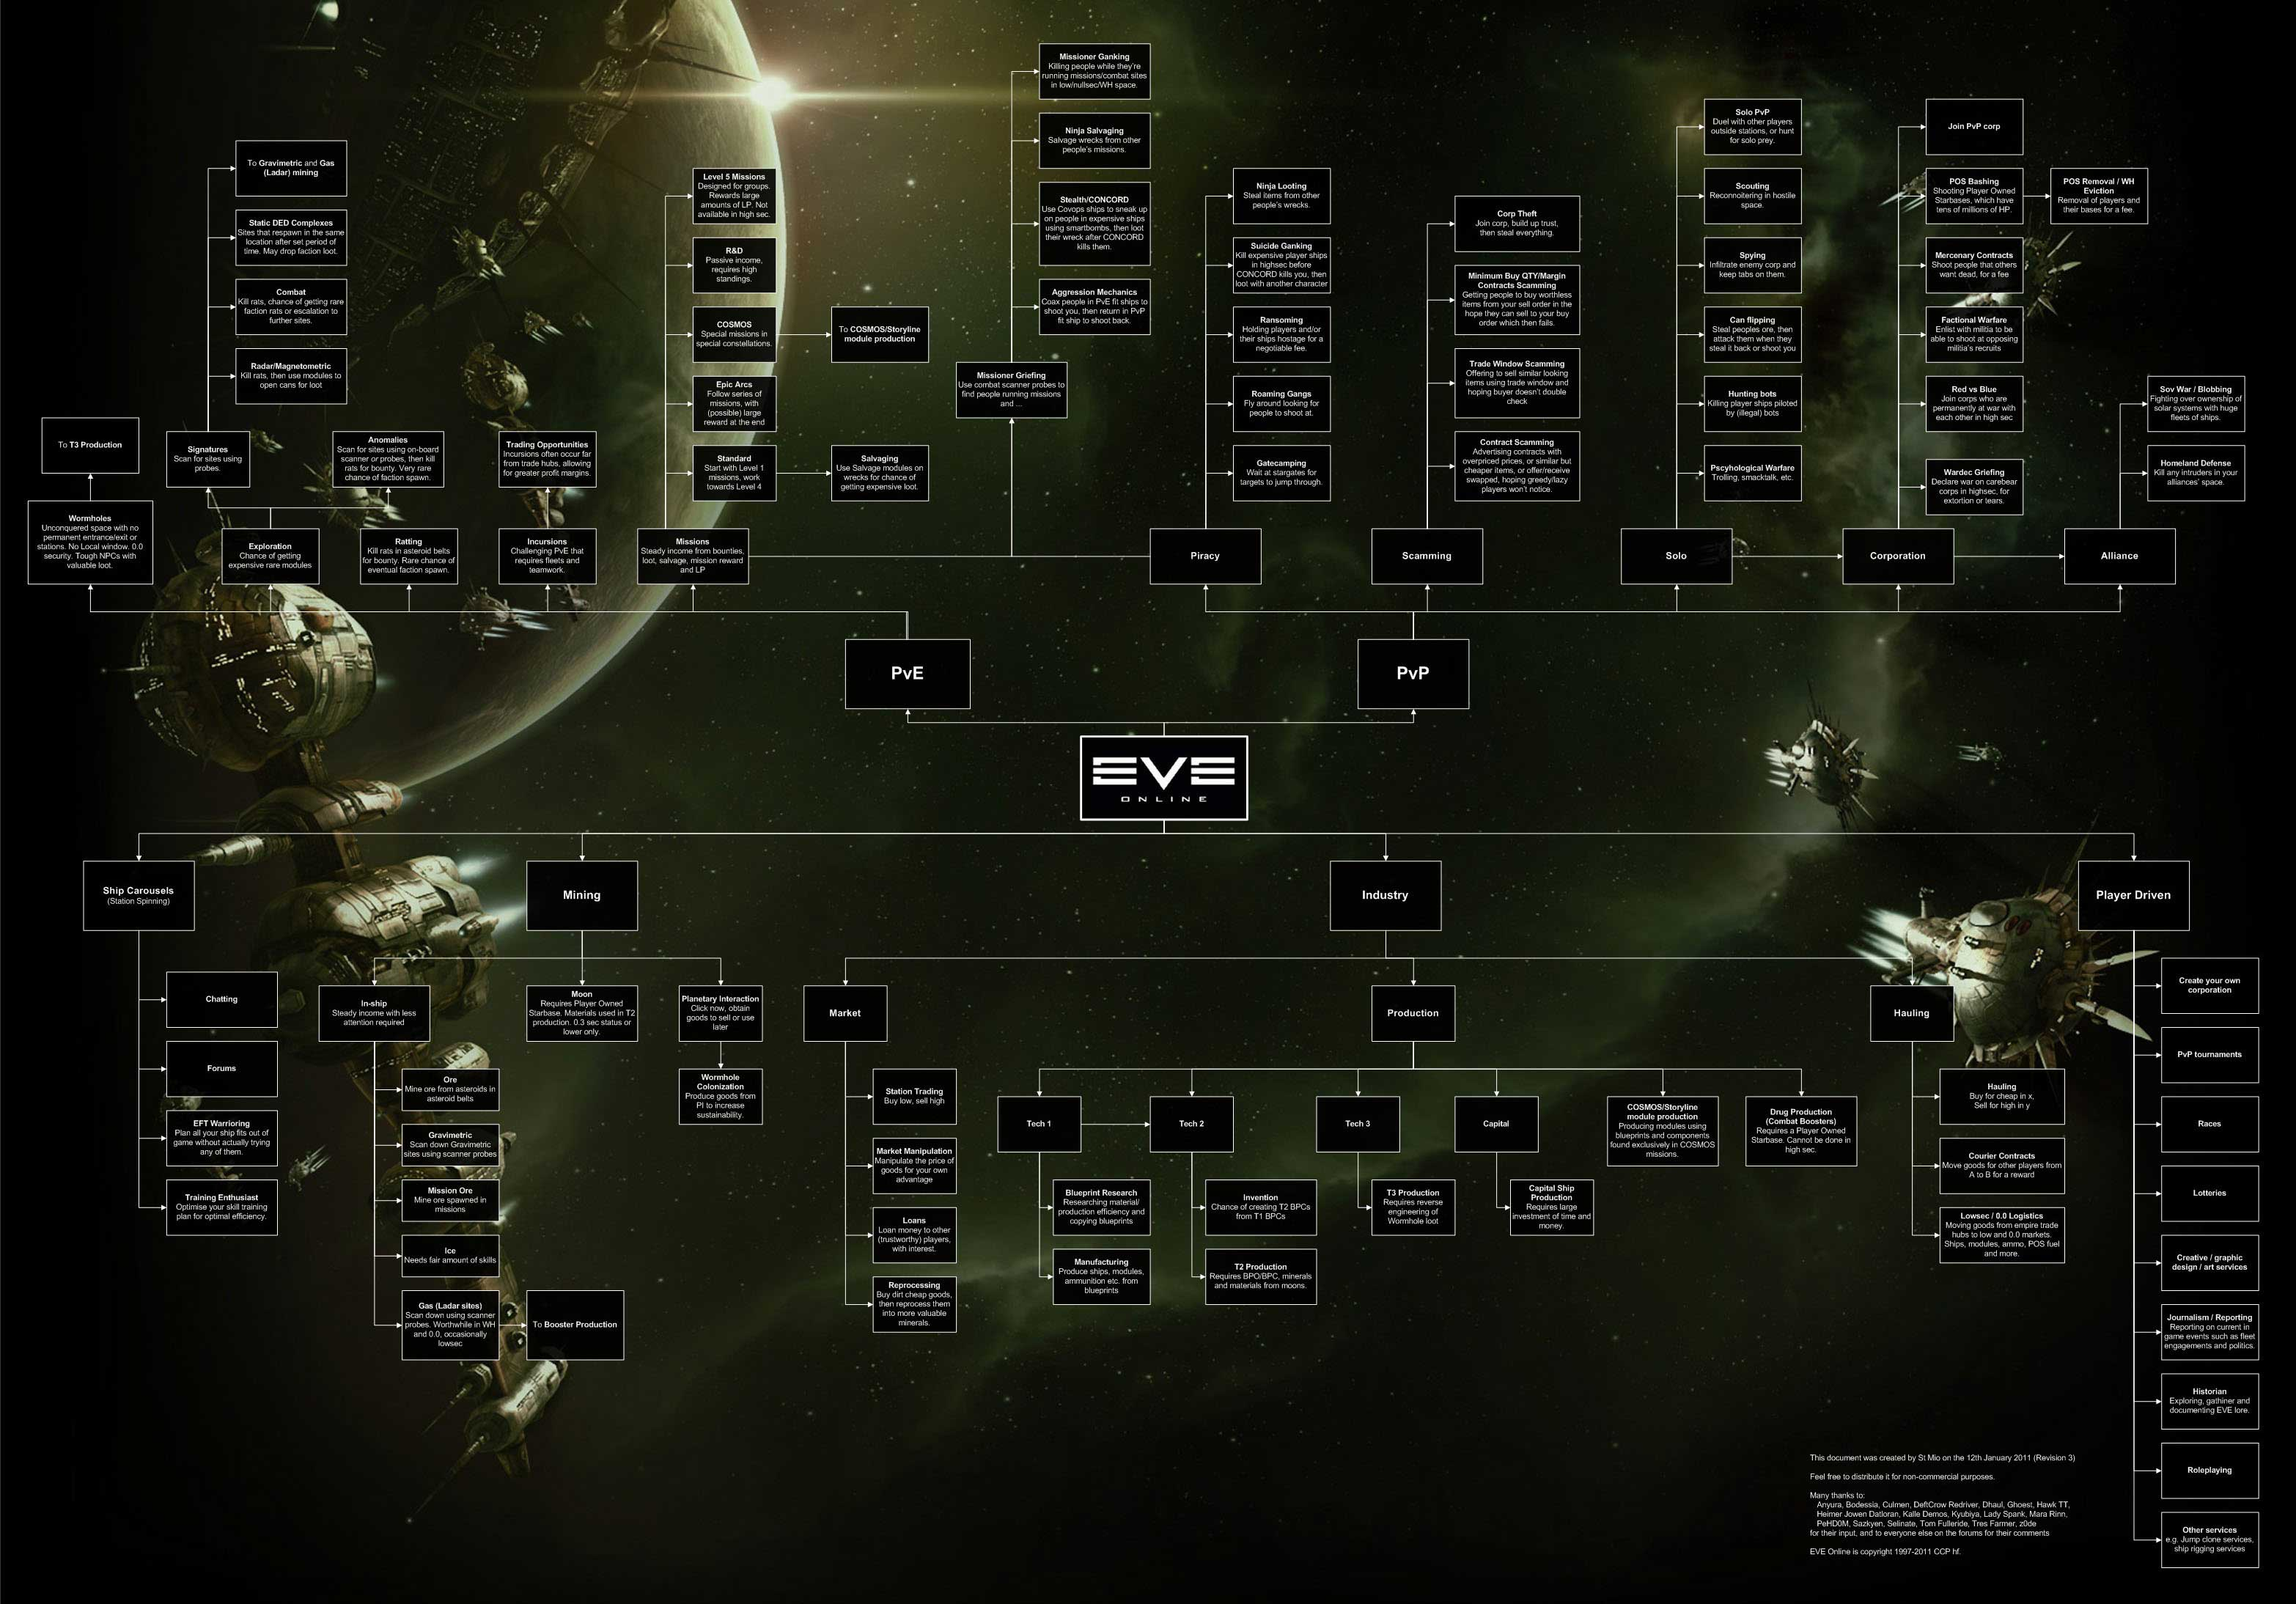 Eve online micro review content image malvernweather Choice Image